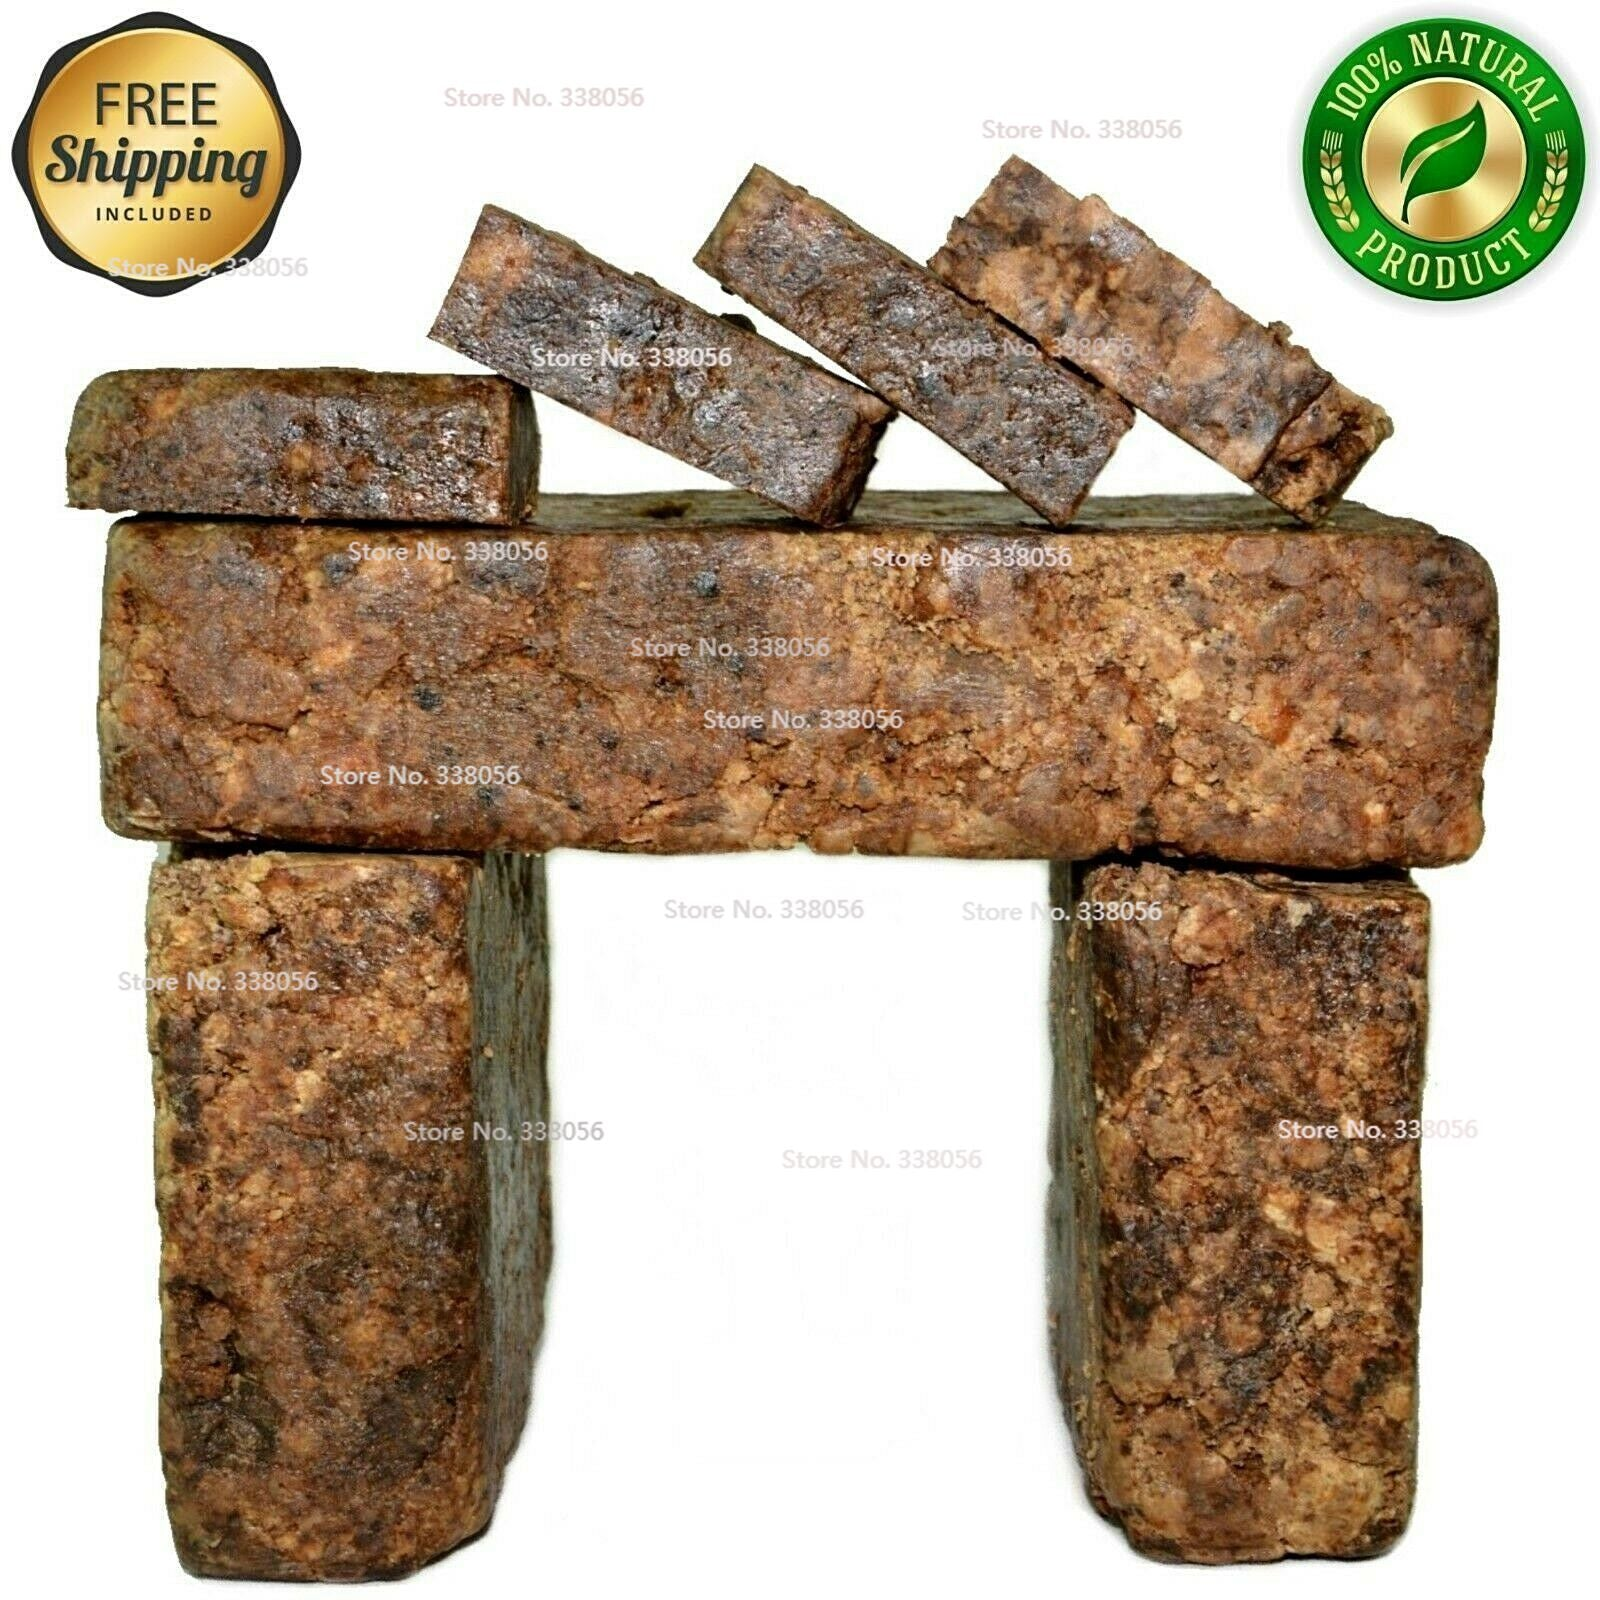 Raw African Black Soap Organic 4 oz Bar 100% Pure Unrefined Natural From Ghana